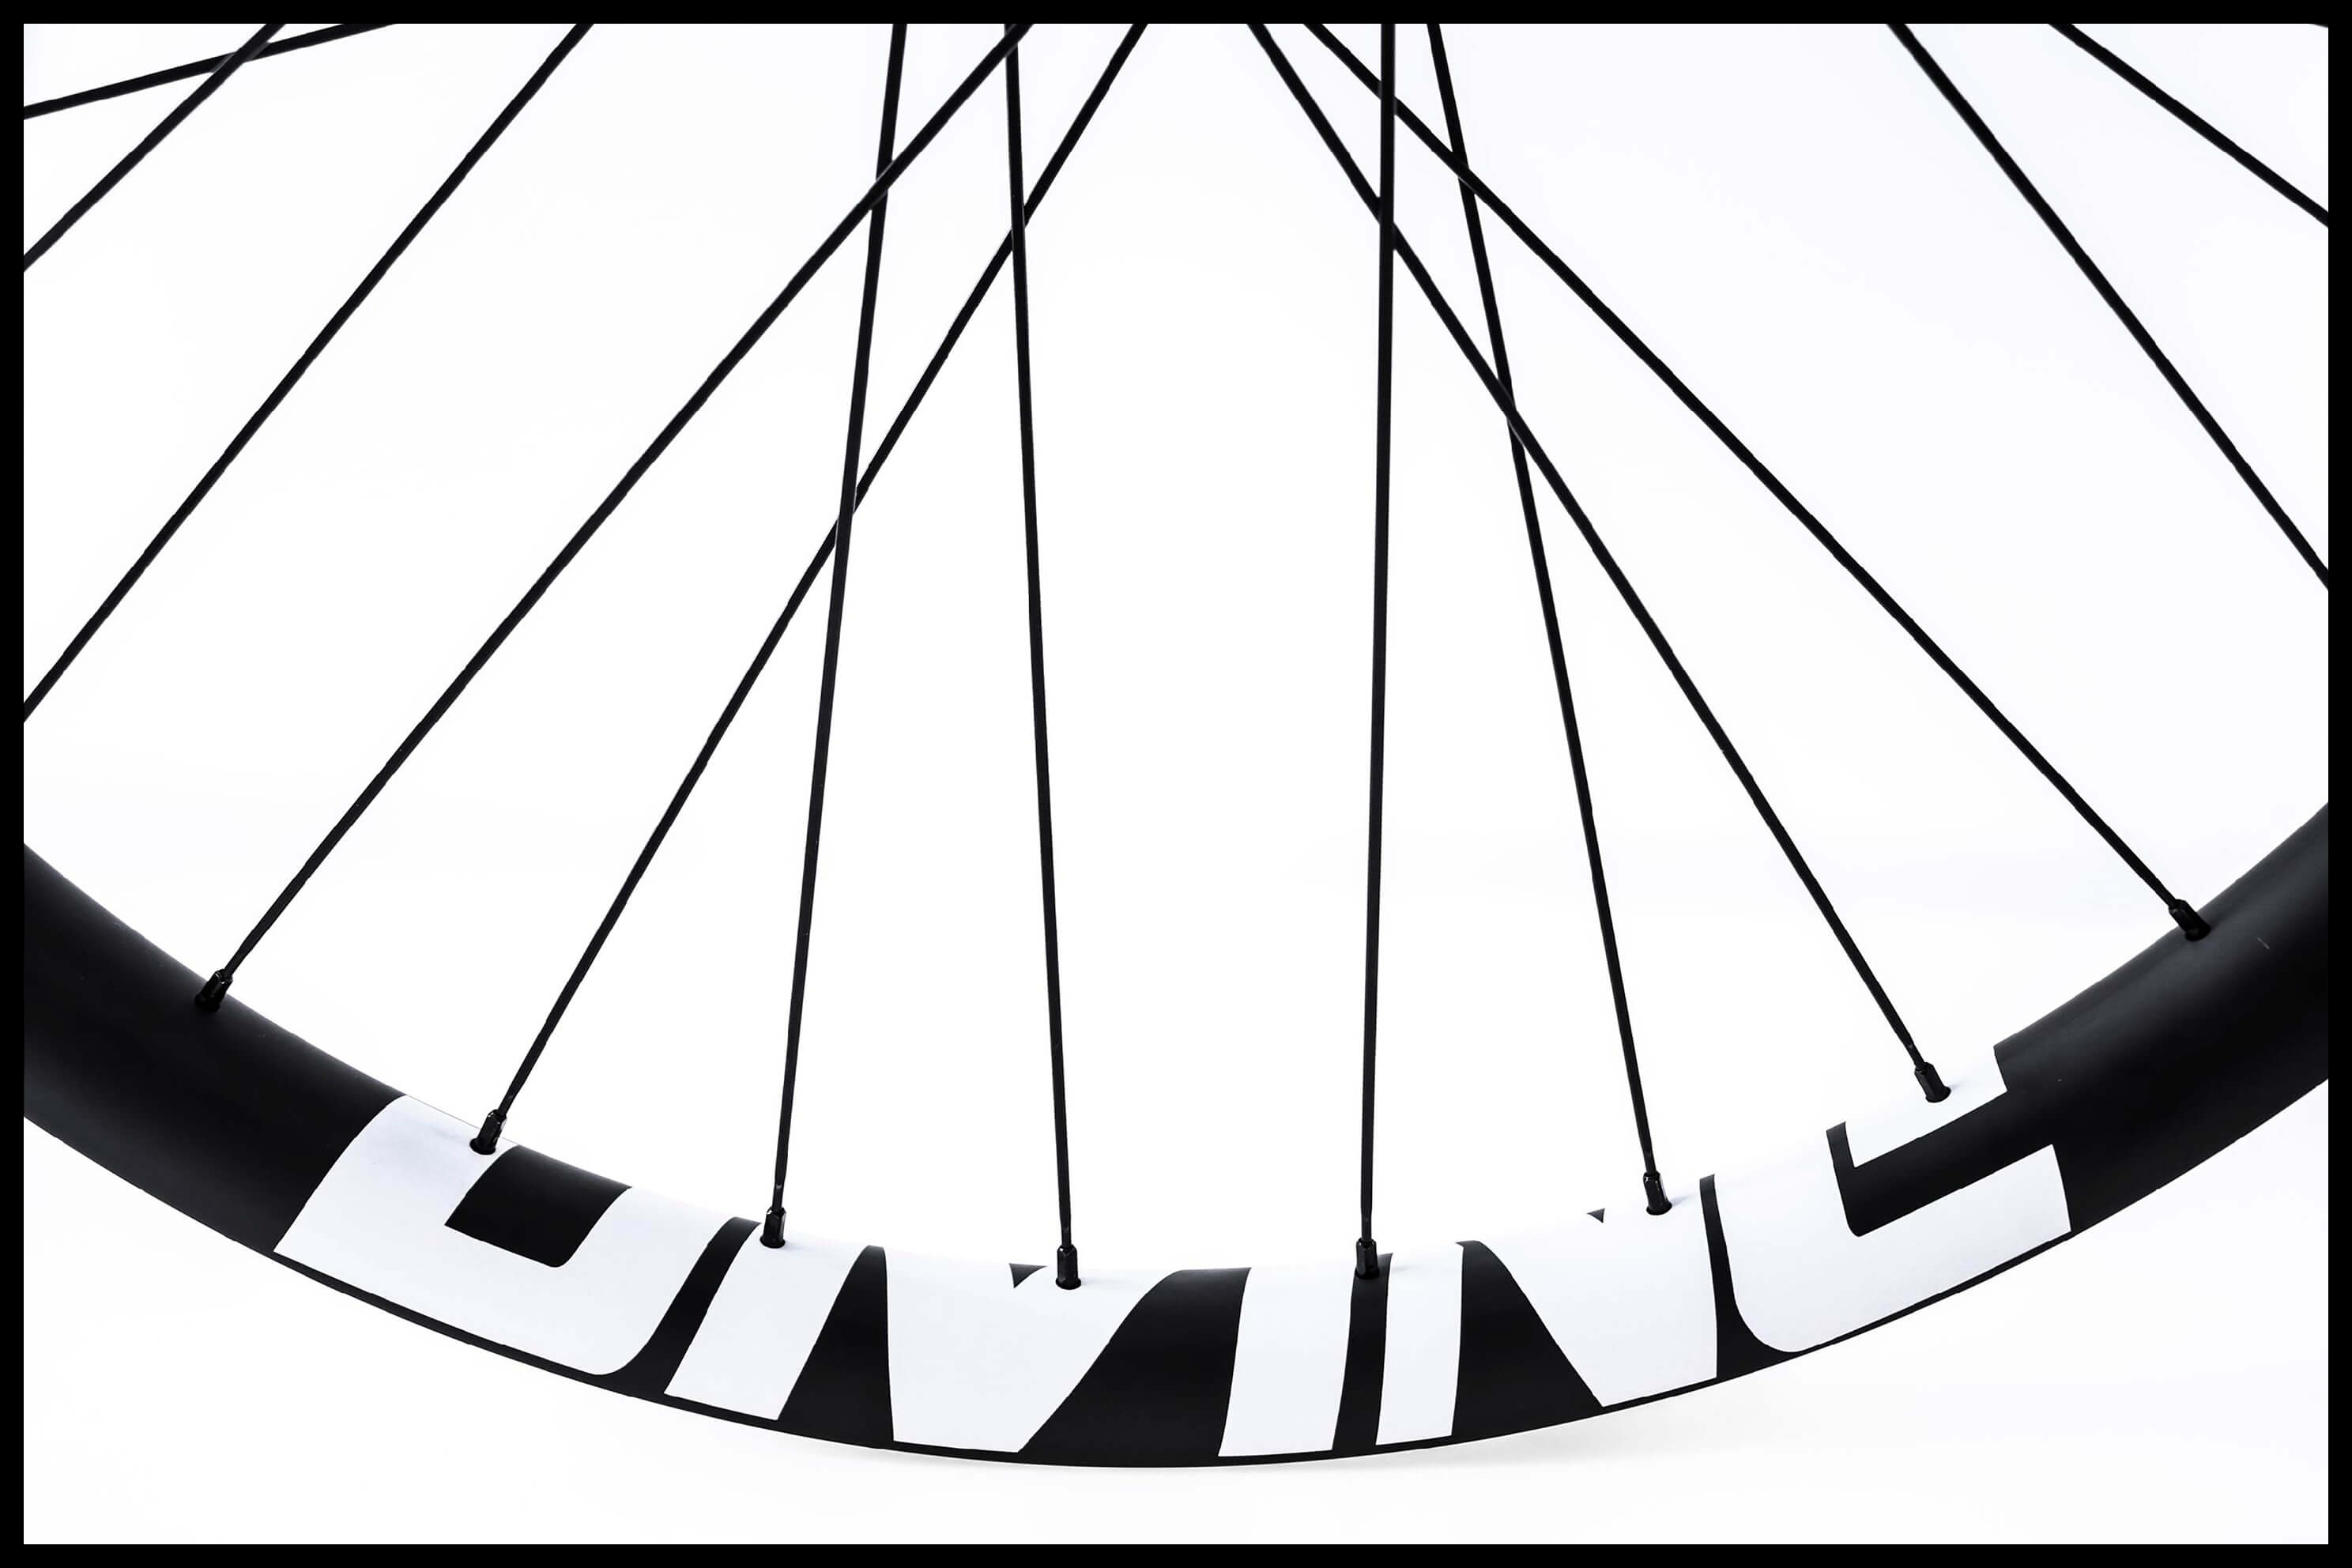 Mountainbike Carbon Rim Logo Detail Image | Divine Cycling